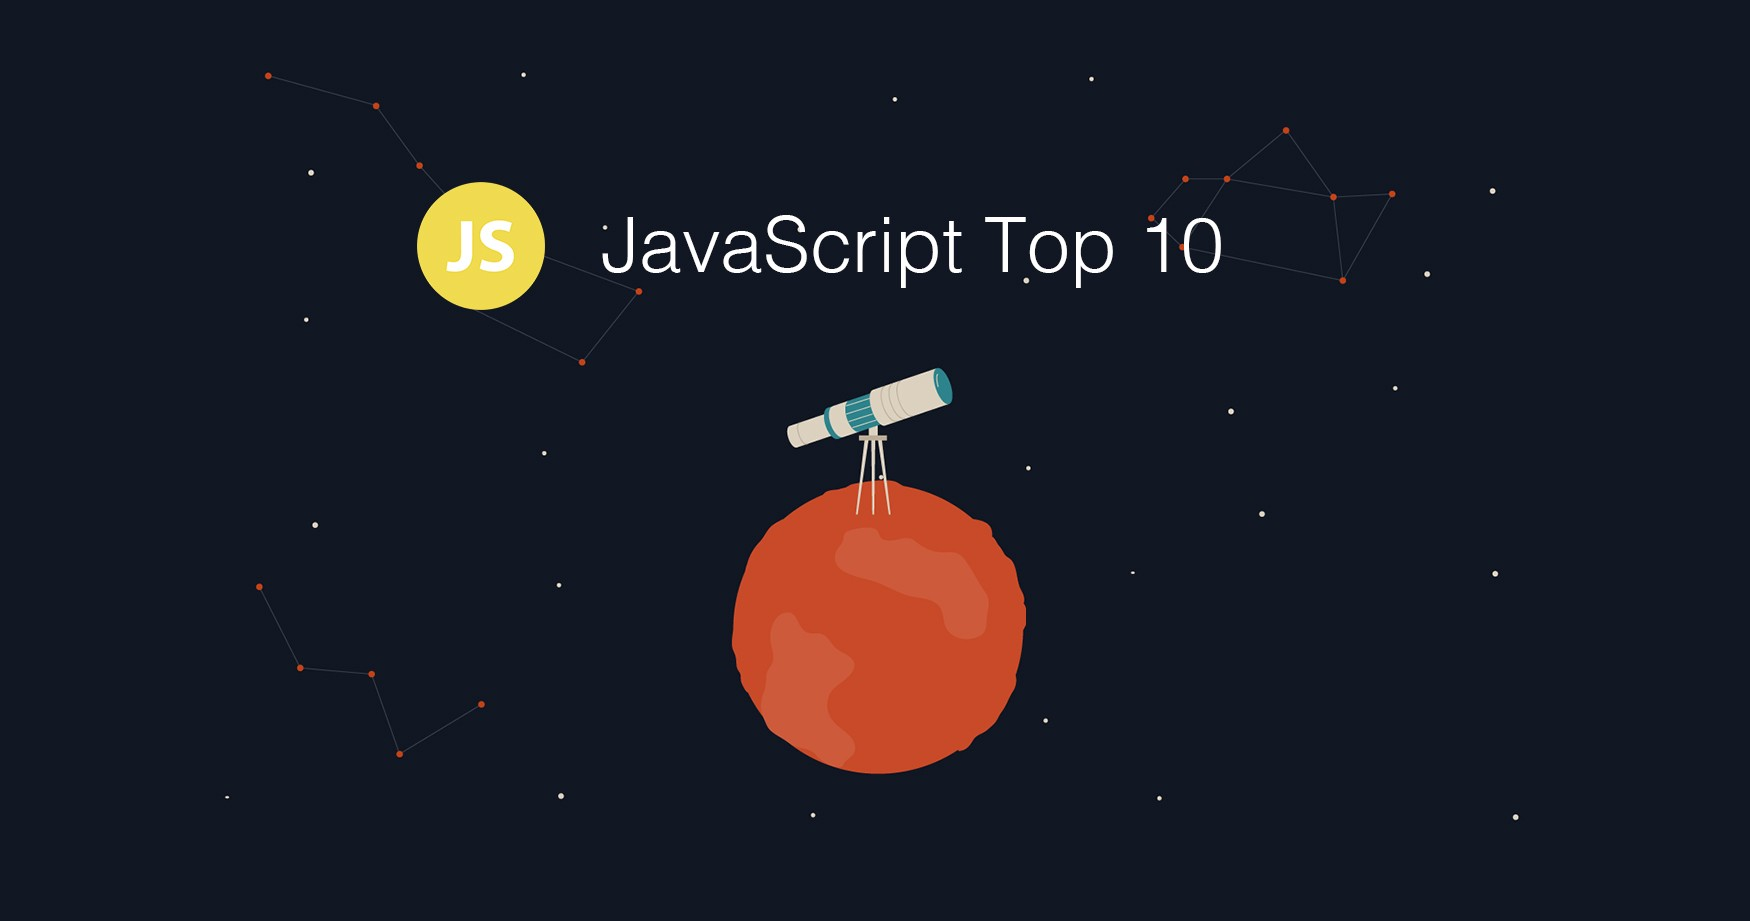 Top 10 JavaScript Articles for the Past Month.